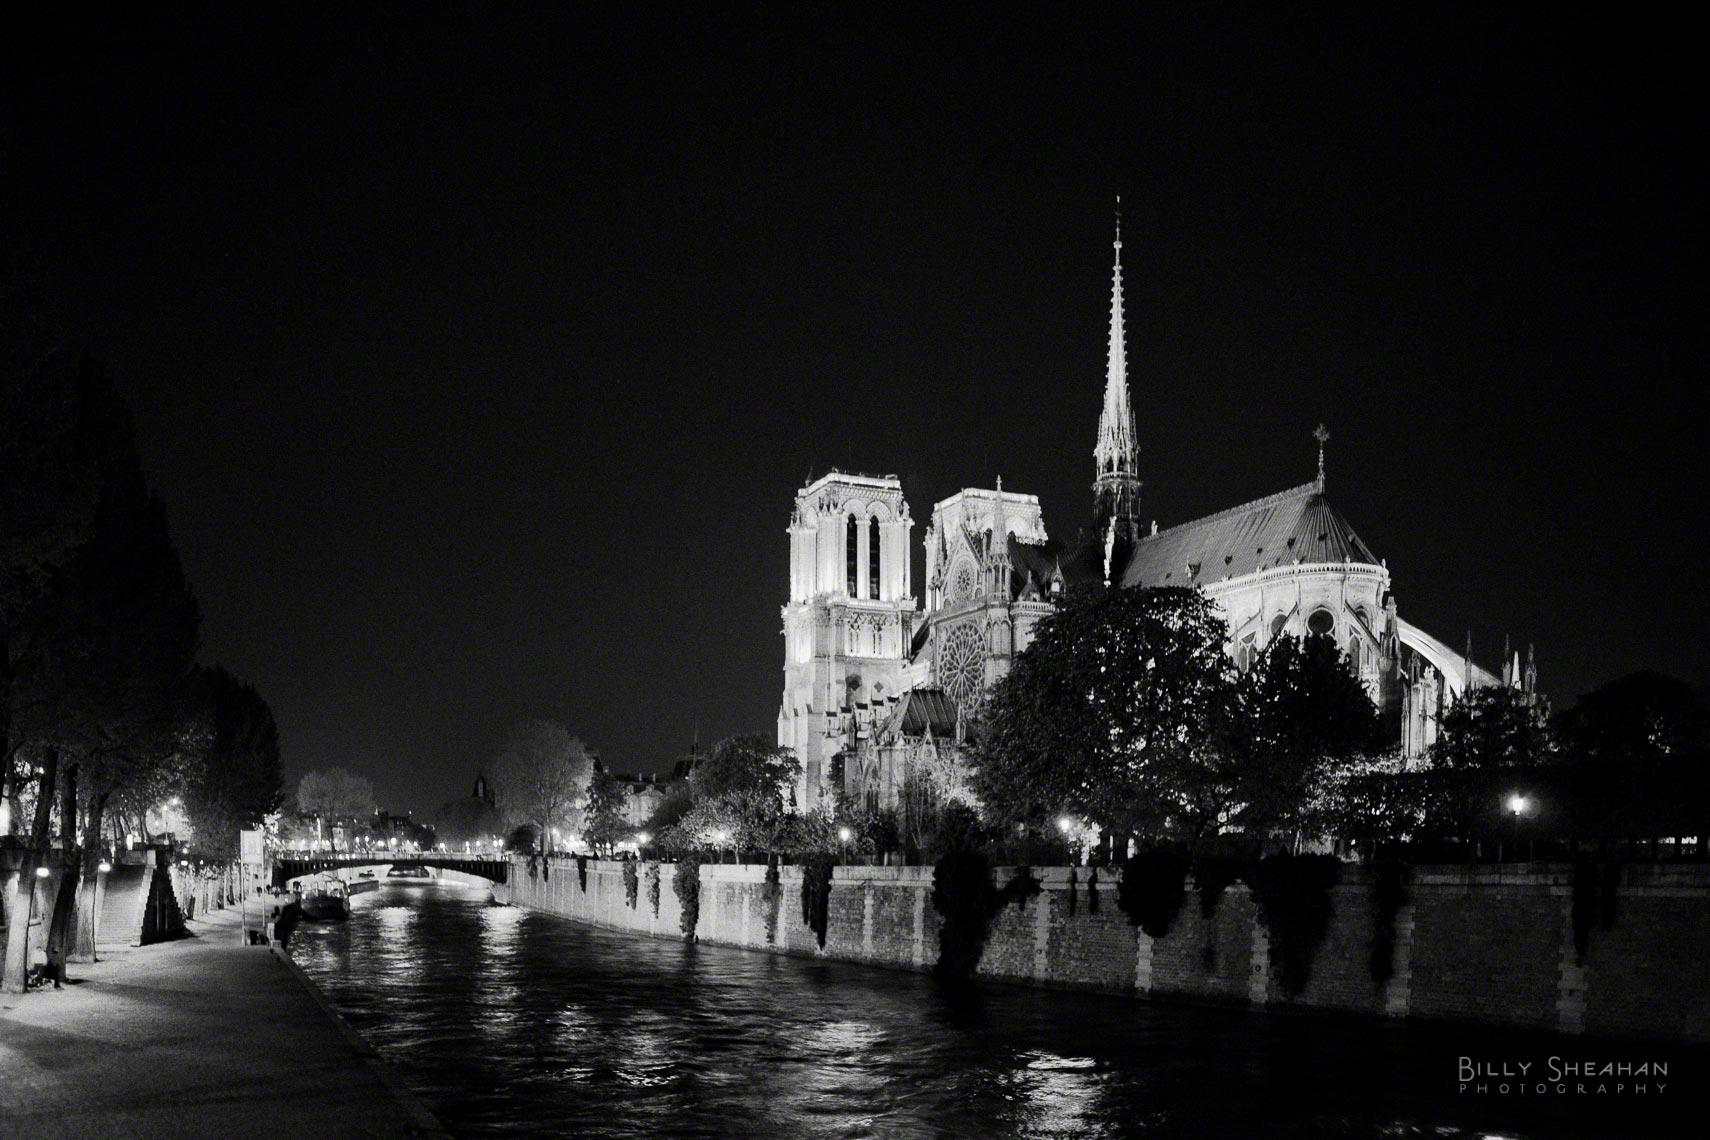 Illuminated_Cathedrale_Notre_Dame_de_Paris_Paris2008_23Apr2008_0115_D.jpg